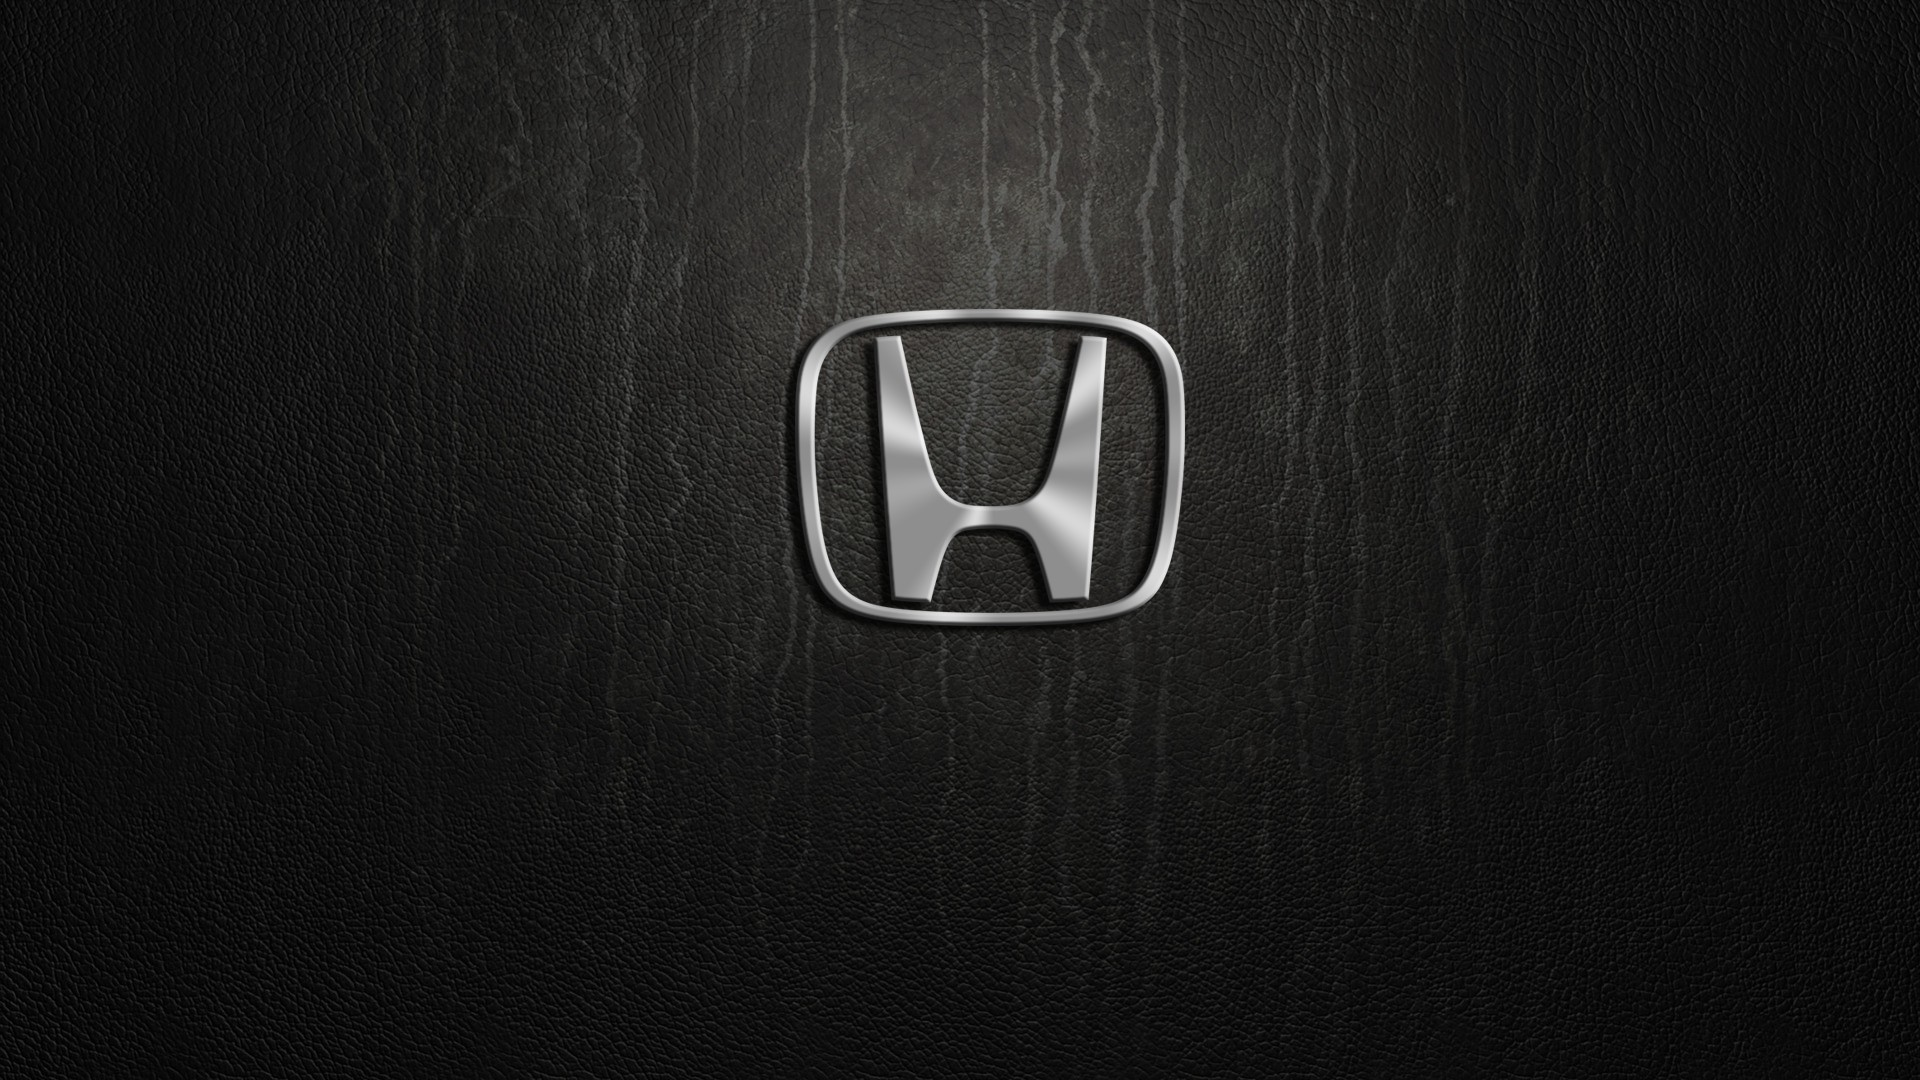 1920x1080 Honda Wallpaper Logo Cars Wallpapers HD